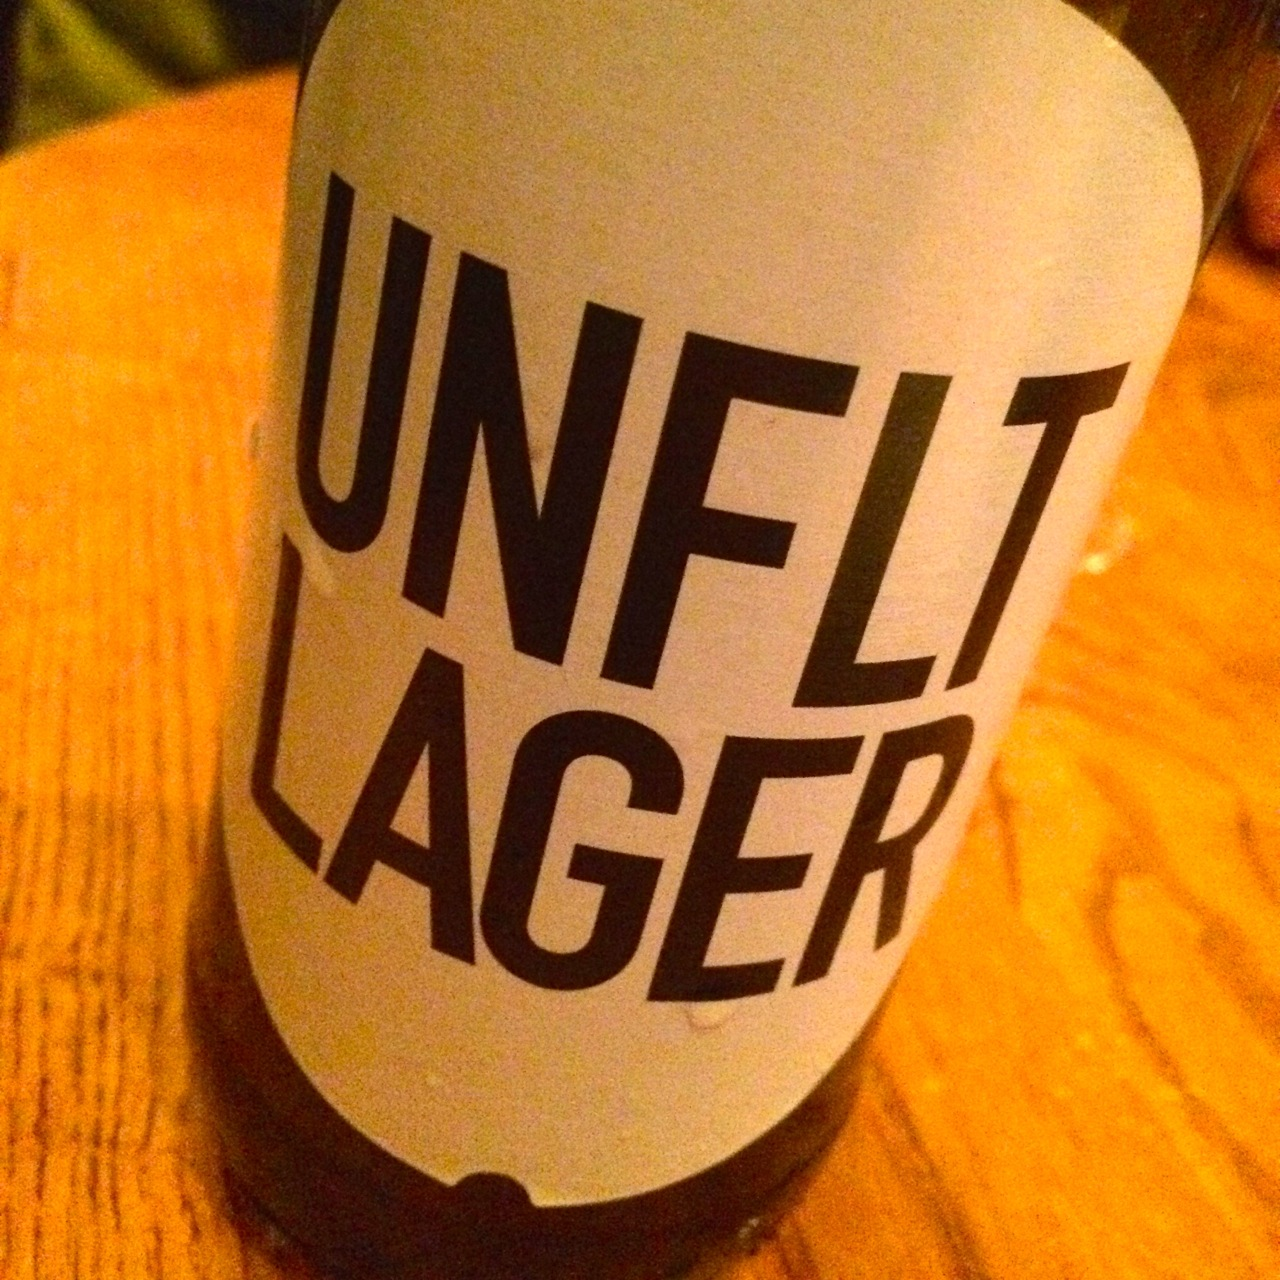 https://i2.wp.com/fatgayvegan.com/wp-content/uploads/2015/07/unfiltered-lager-and-union.jpg?fit=1280%2C1280